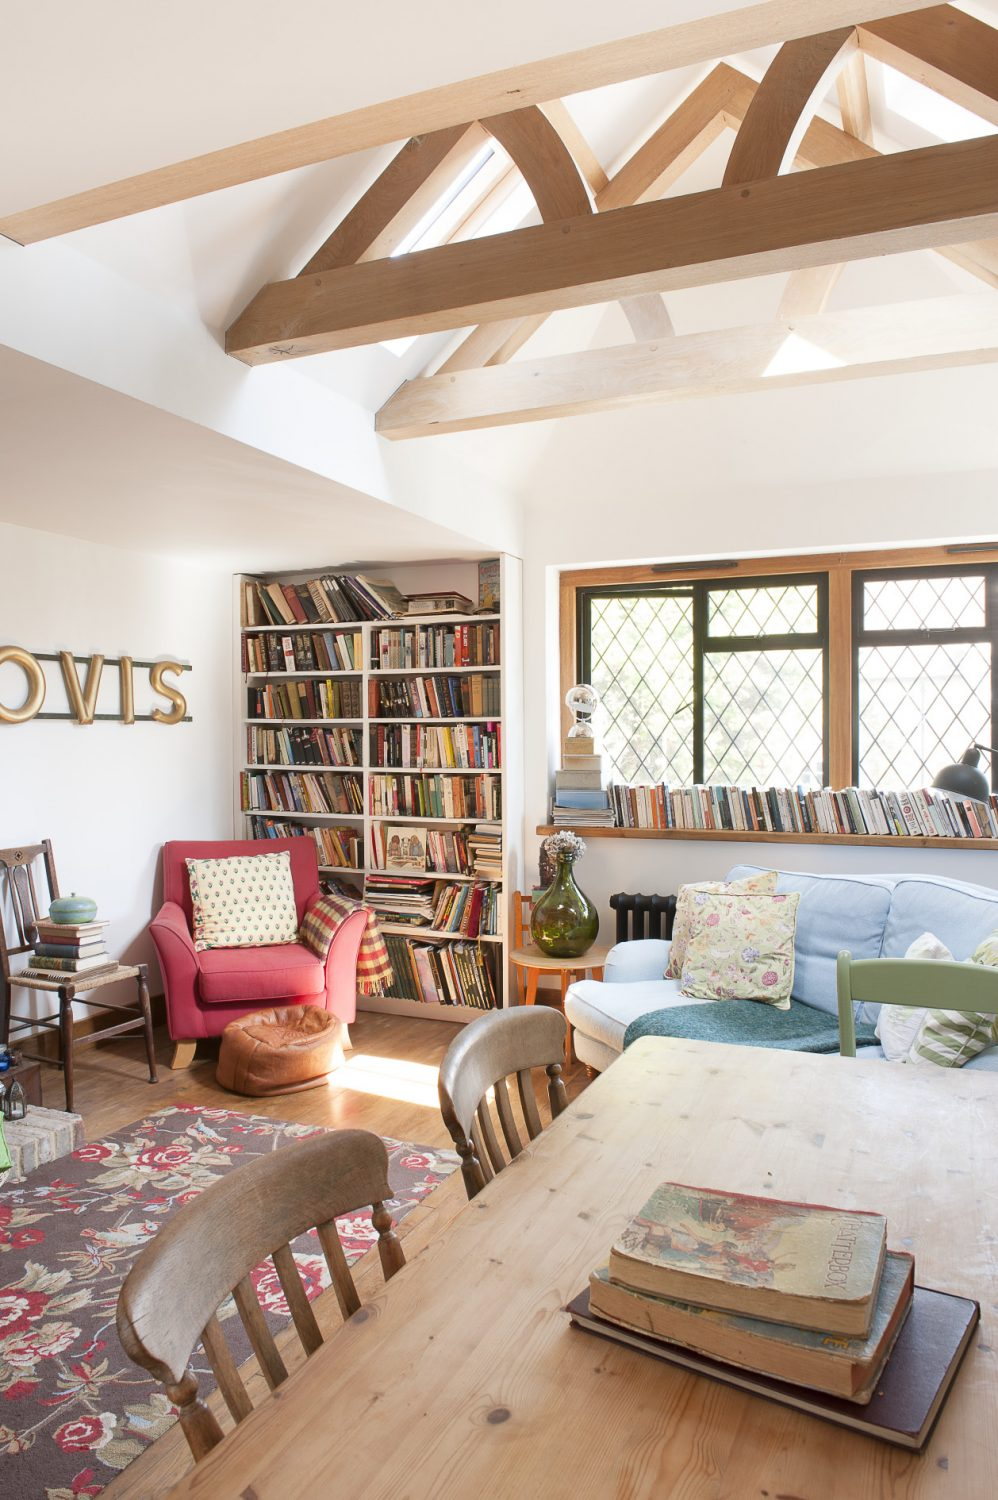 The bright dining room is filled with an eclectic mix of books rescued from the tip